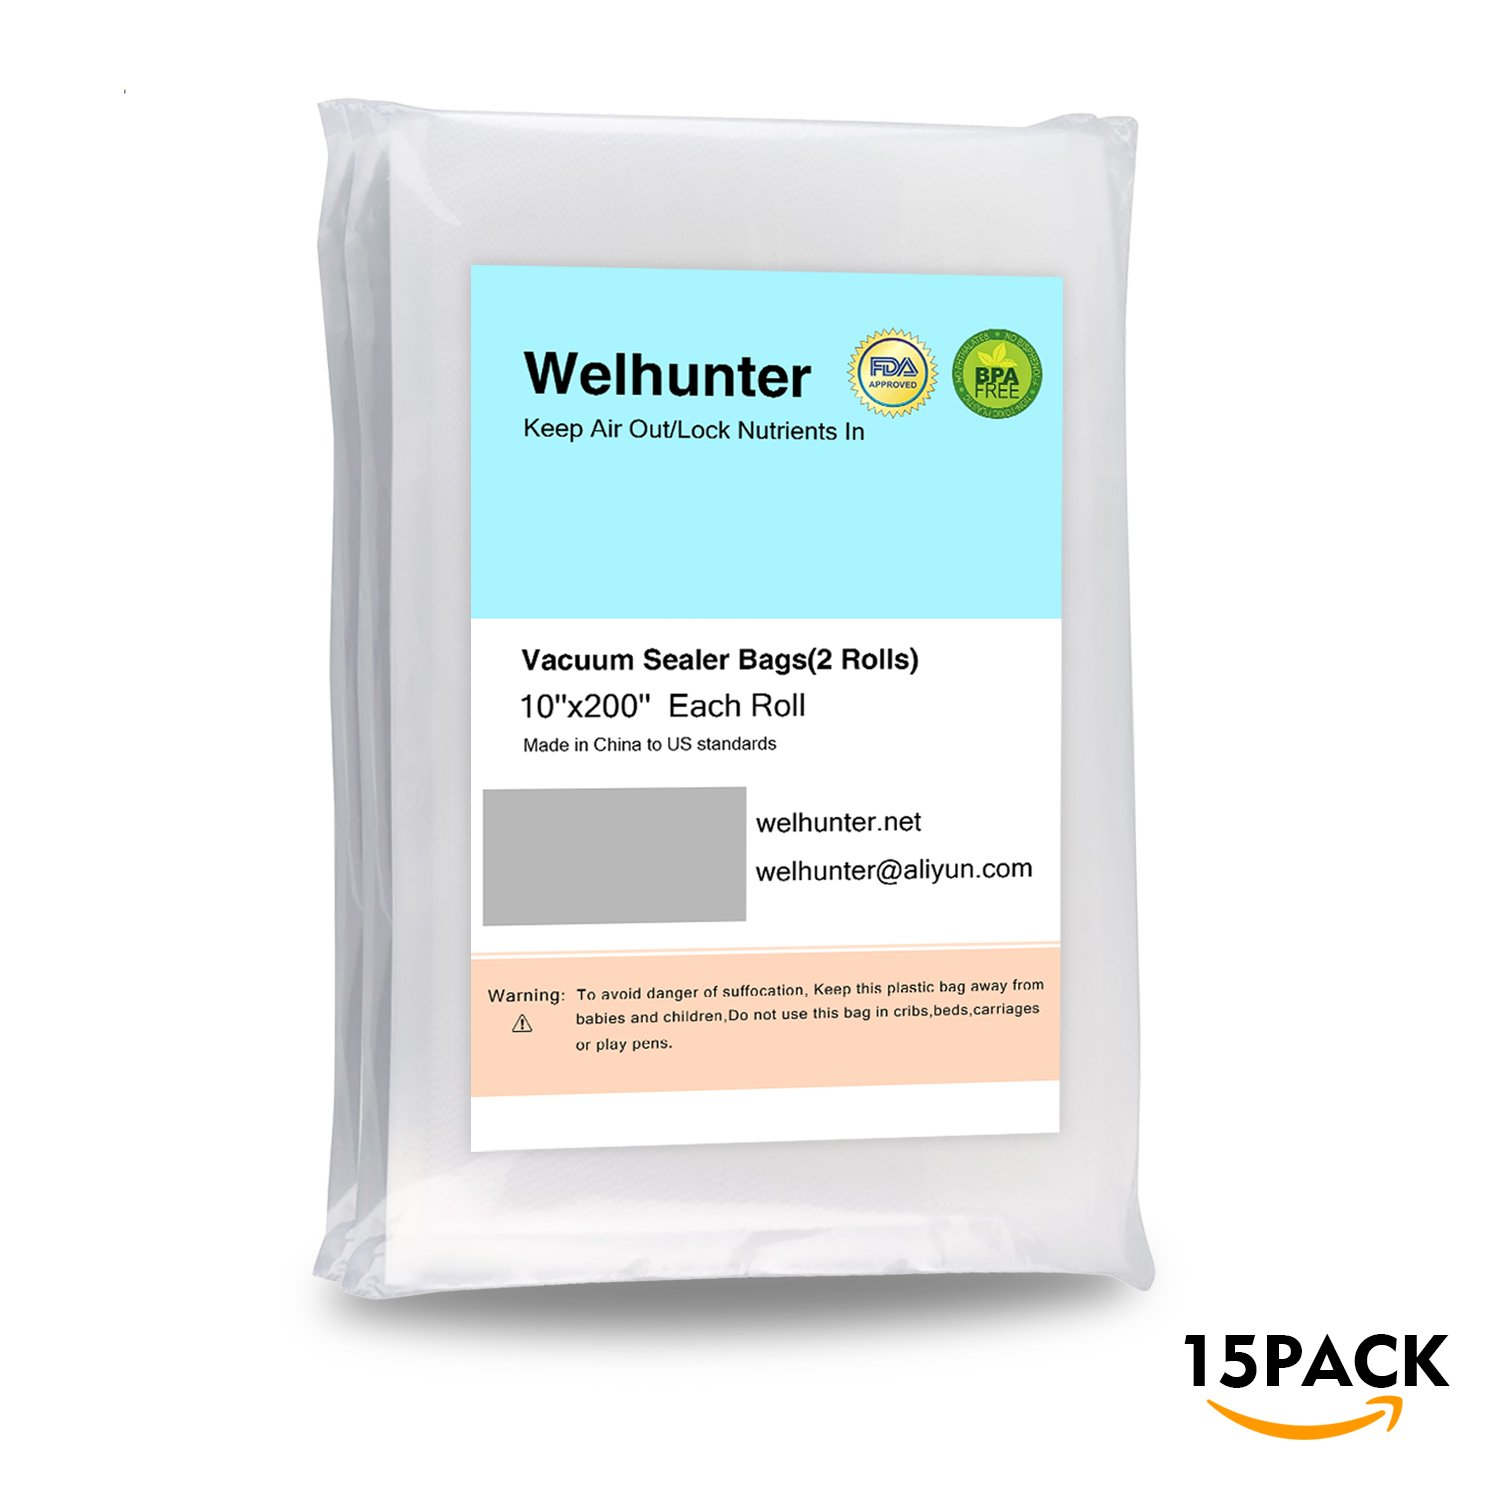 Welhunter Vacuum Sealer Bags with Length 10 inch and Height 8 inch,Commercial Grade Bag for all Vacuum Sealers and Food save